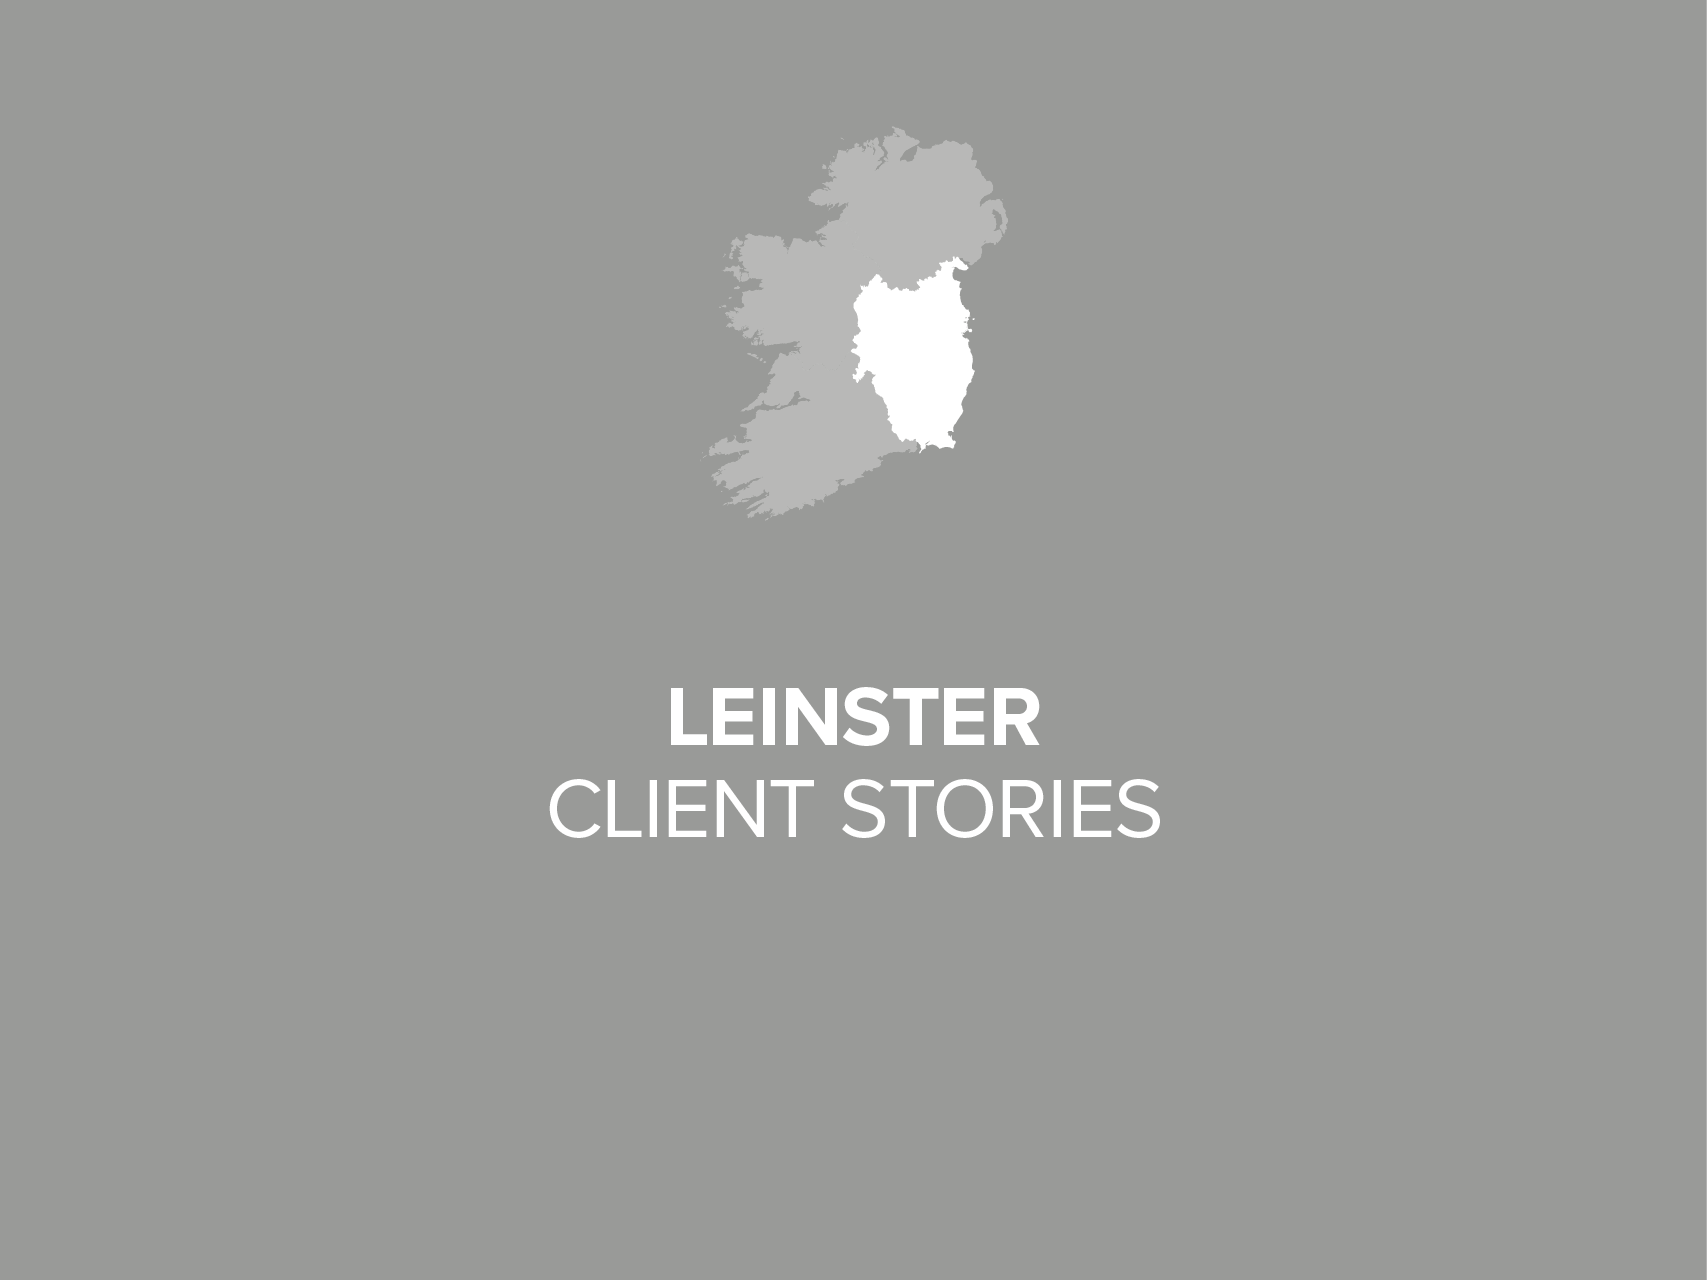 Leinster Client Stories